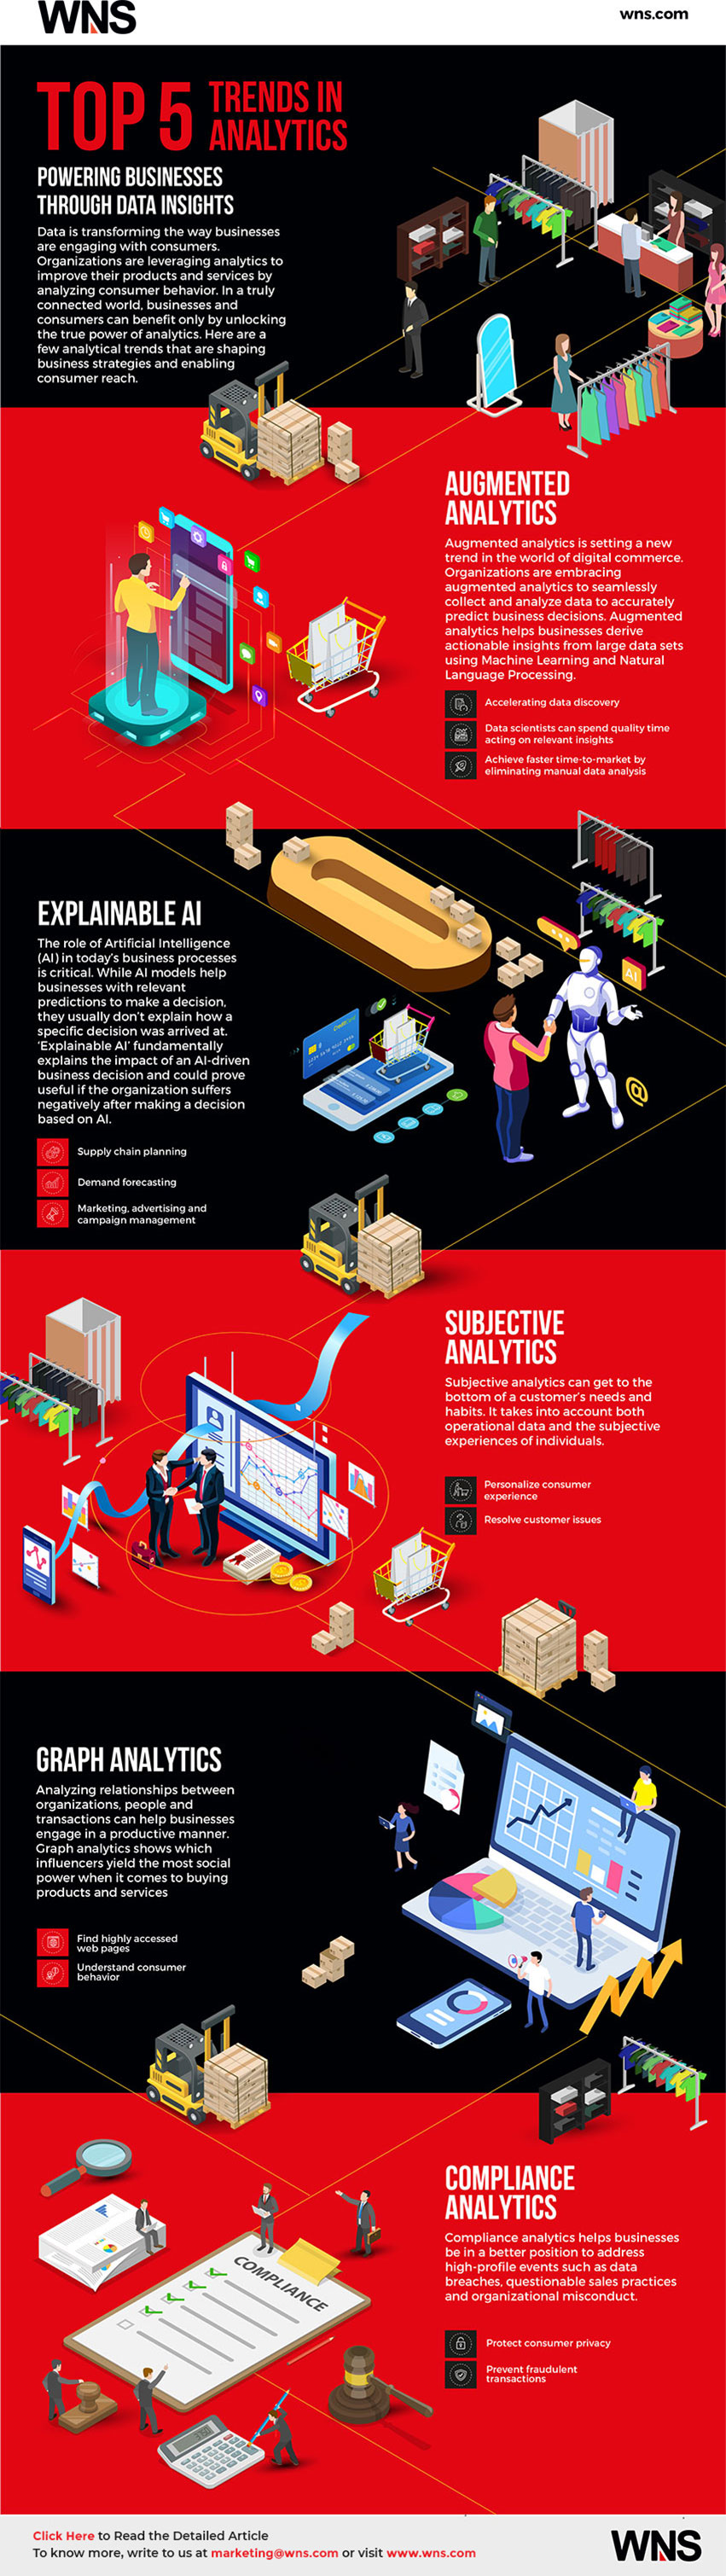 Top 5 Trends in Analytics Infographic 2019